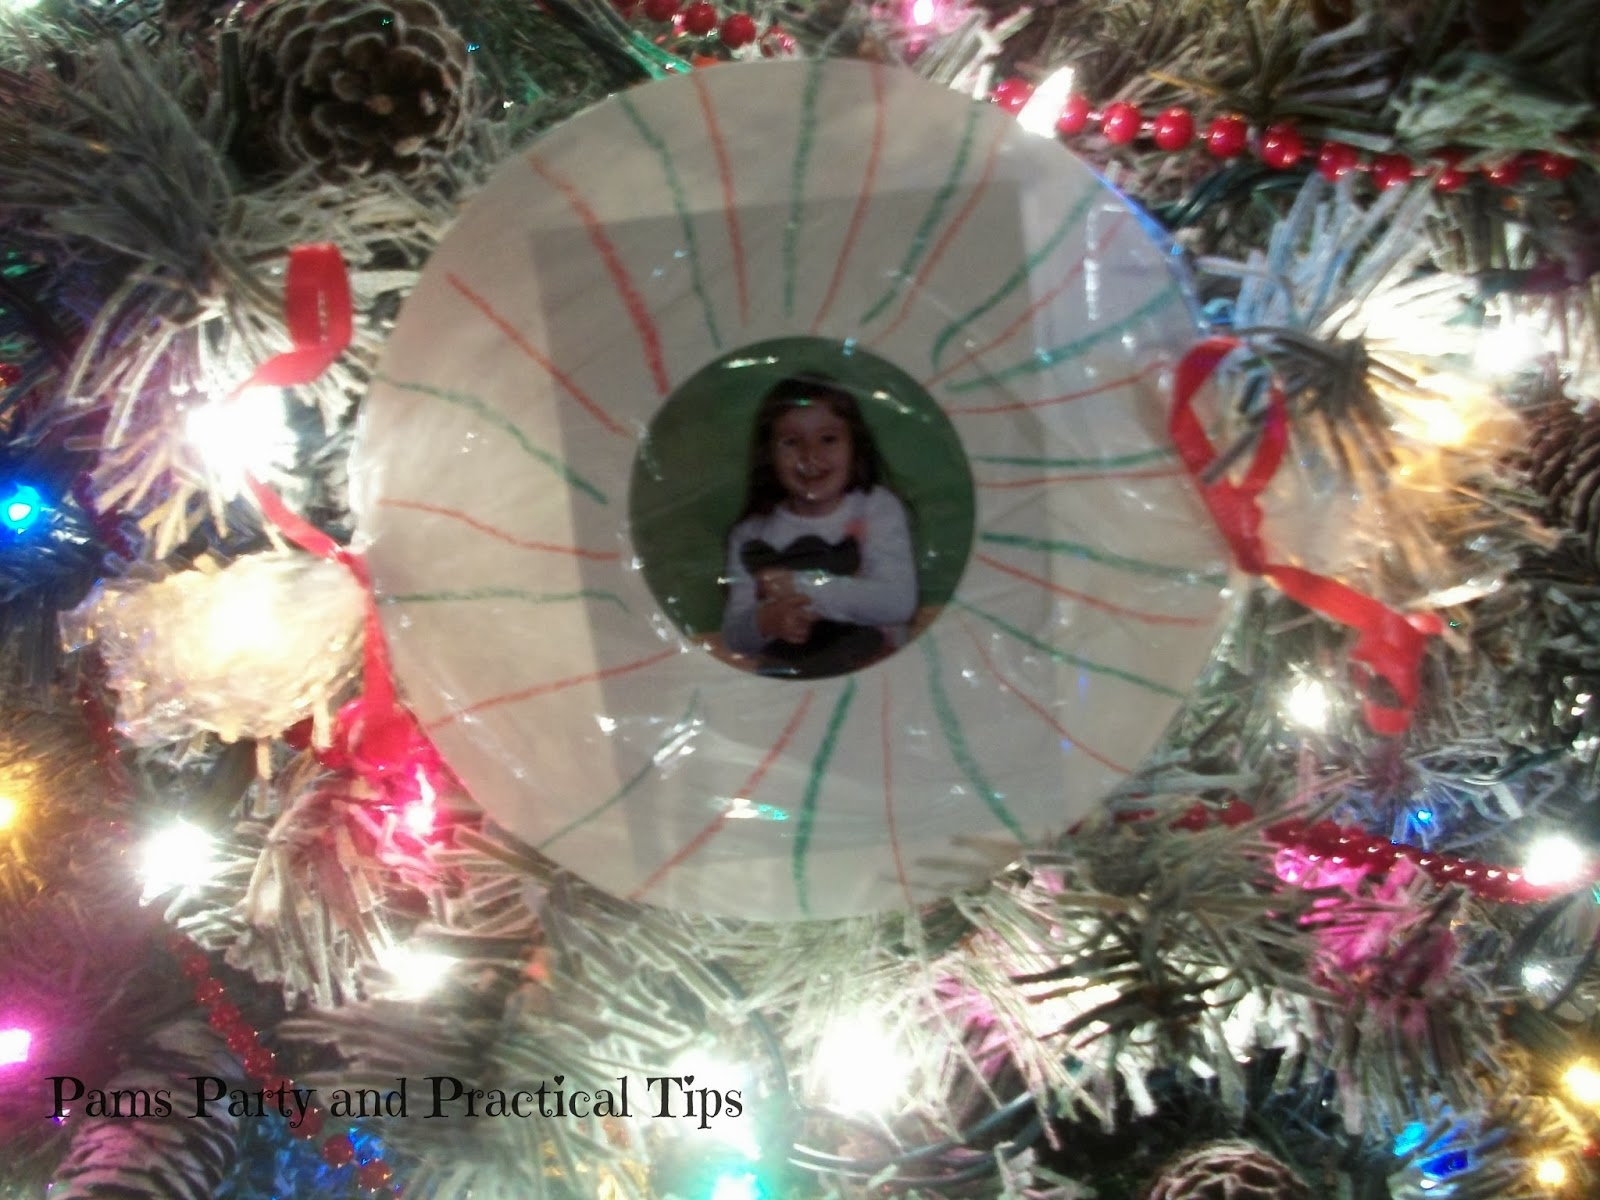 Pams Party & Practical Tips: Candy Frame Ornament